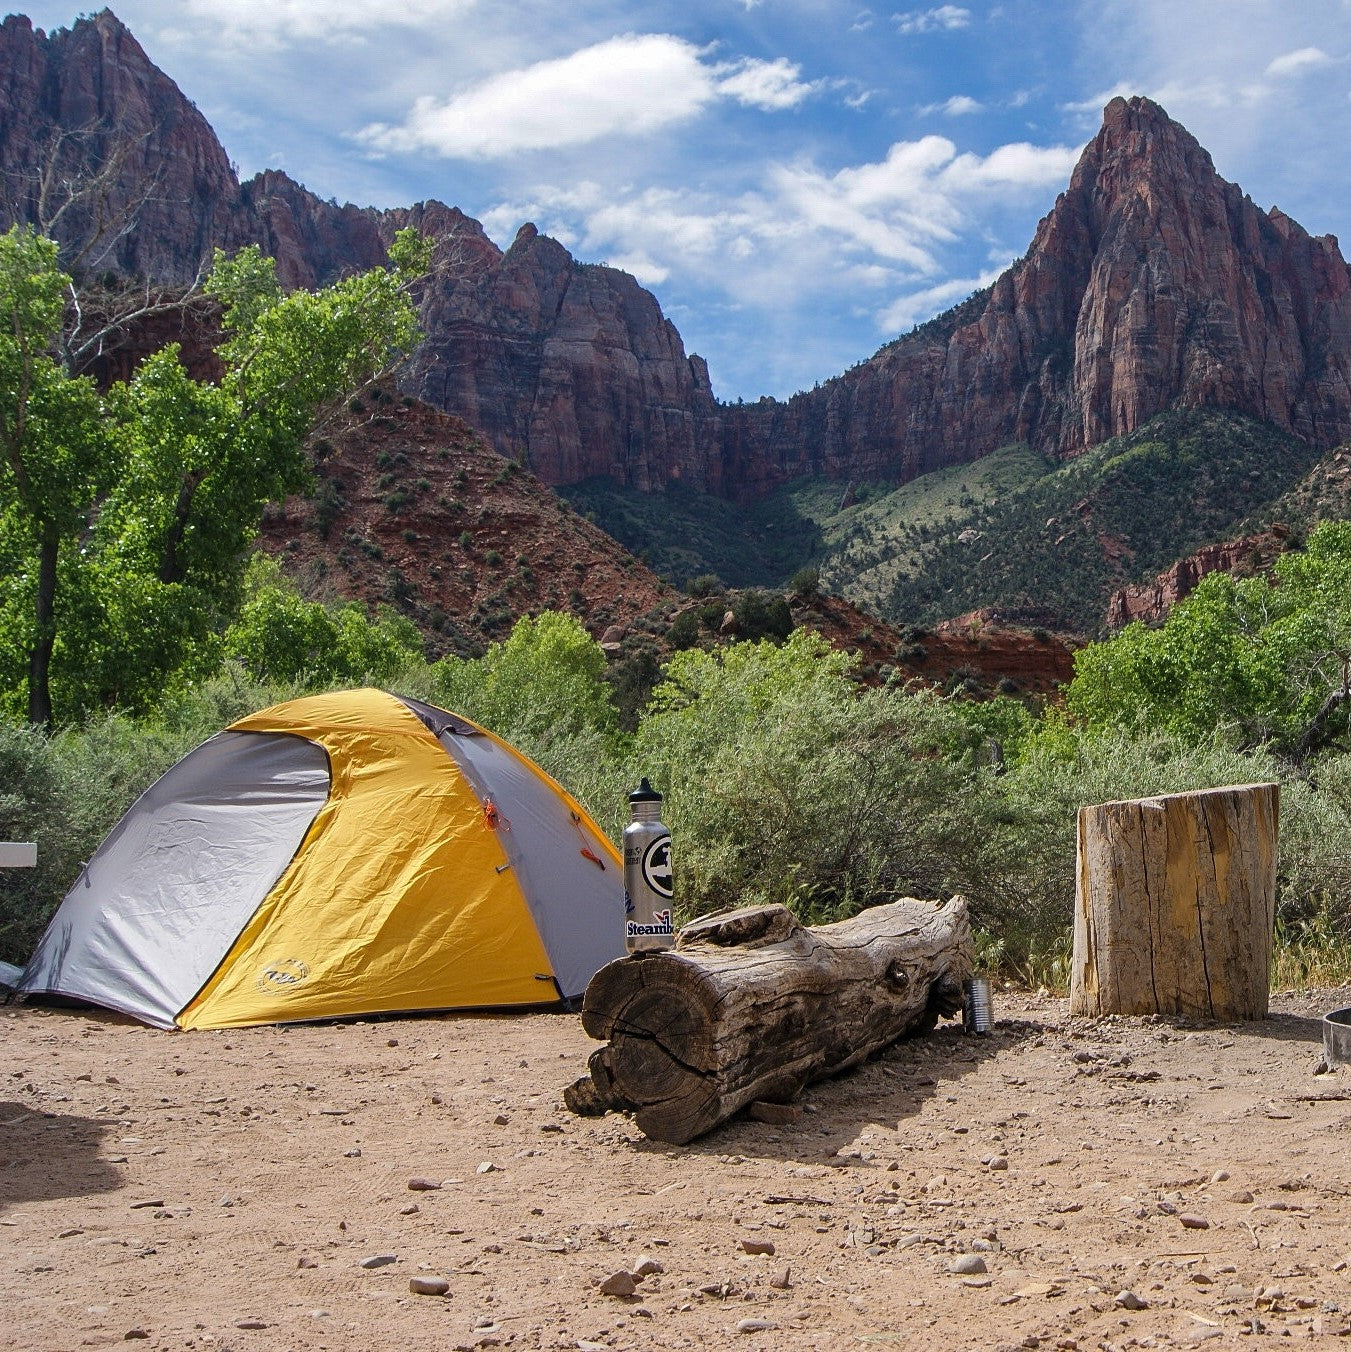 Things You Should Consider Before Getting Your Outdoor Gear